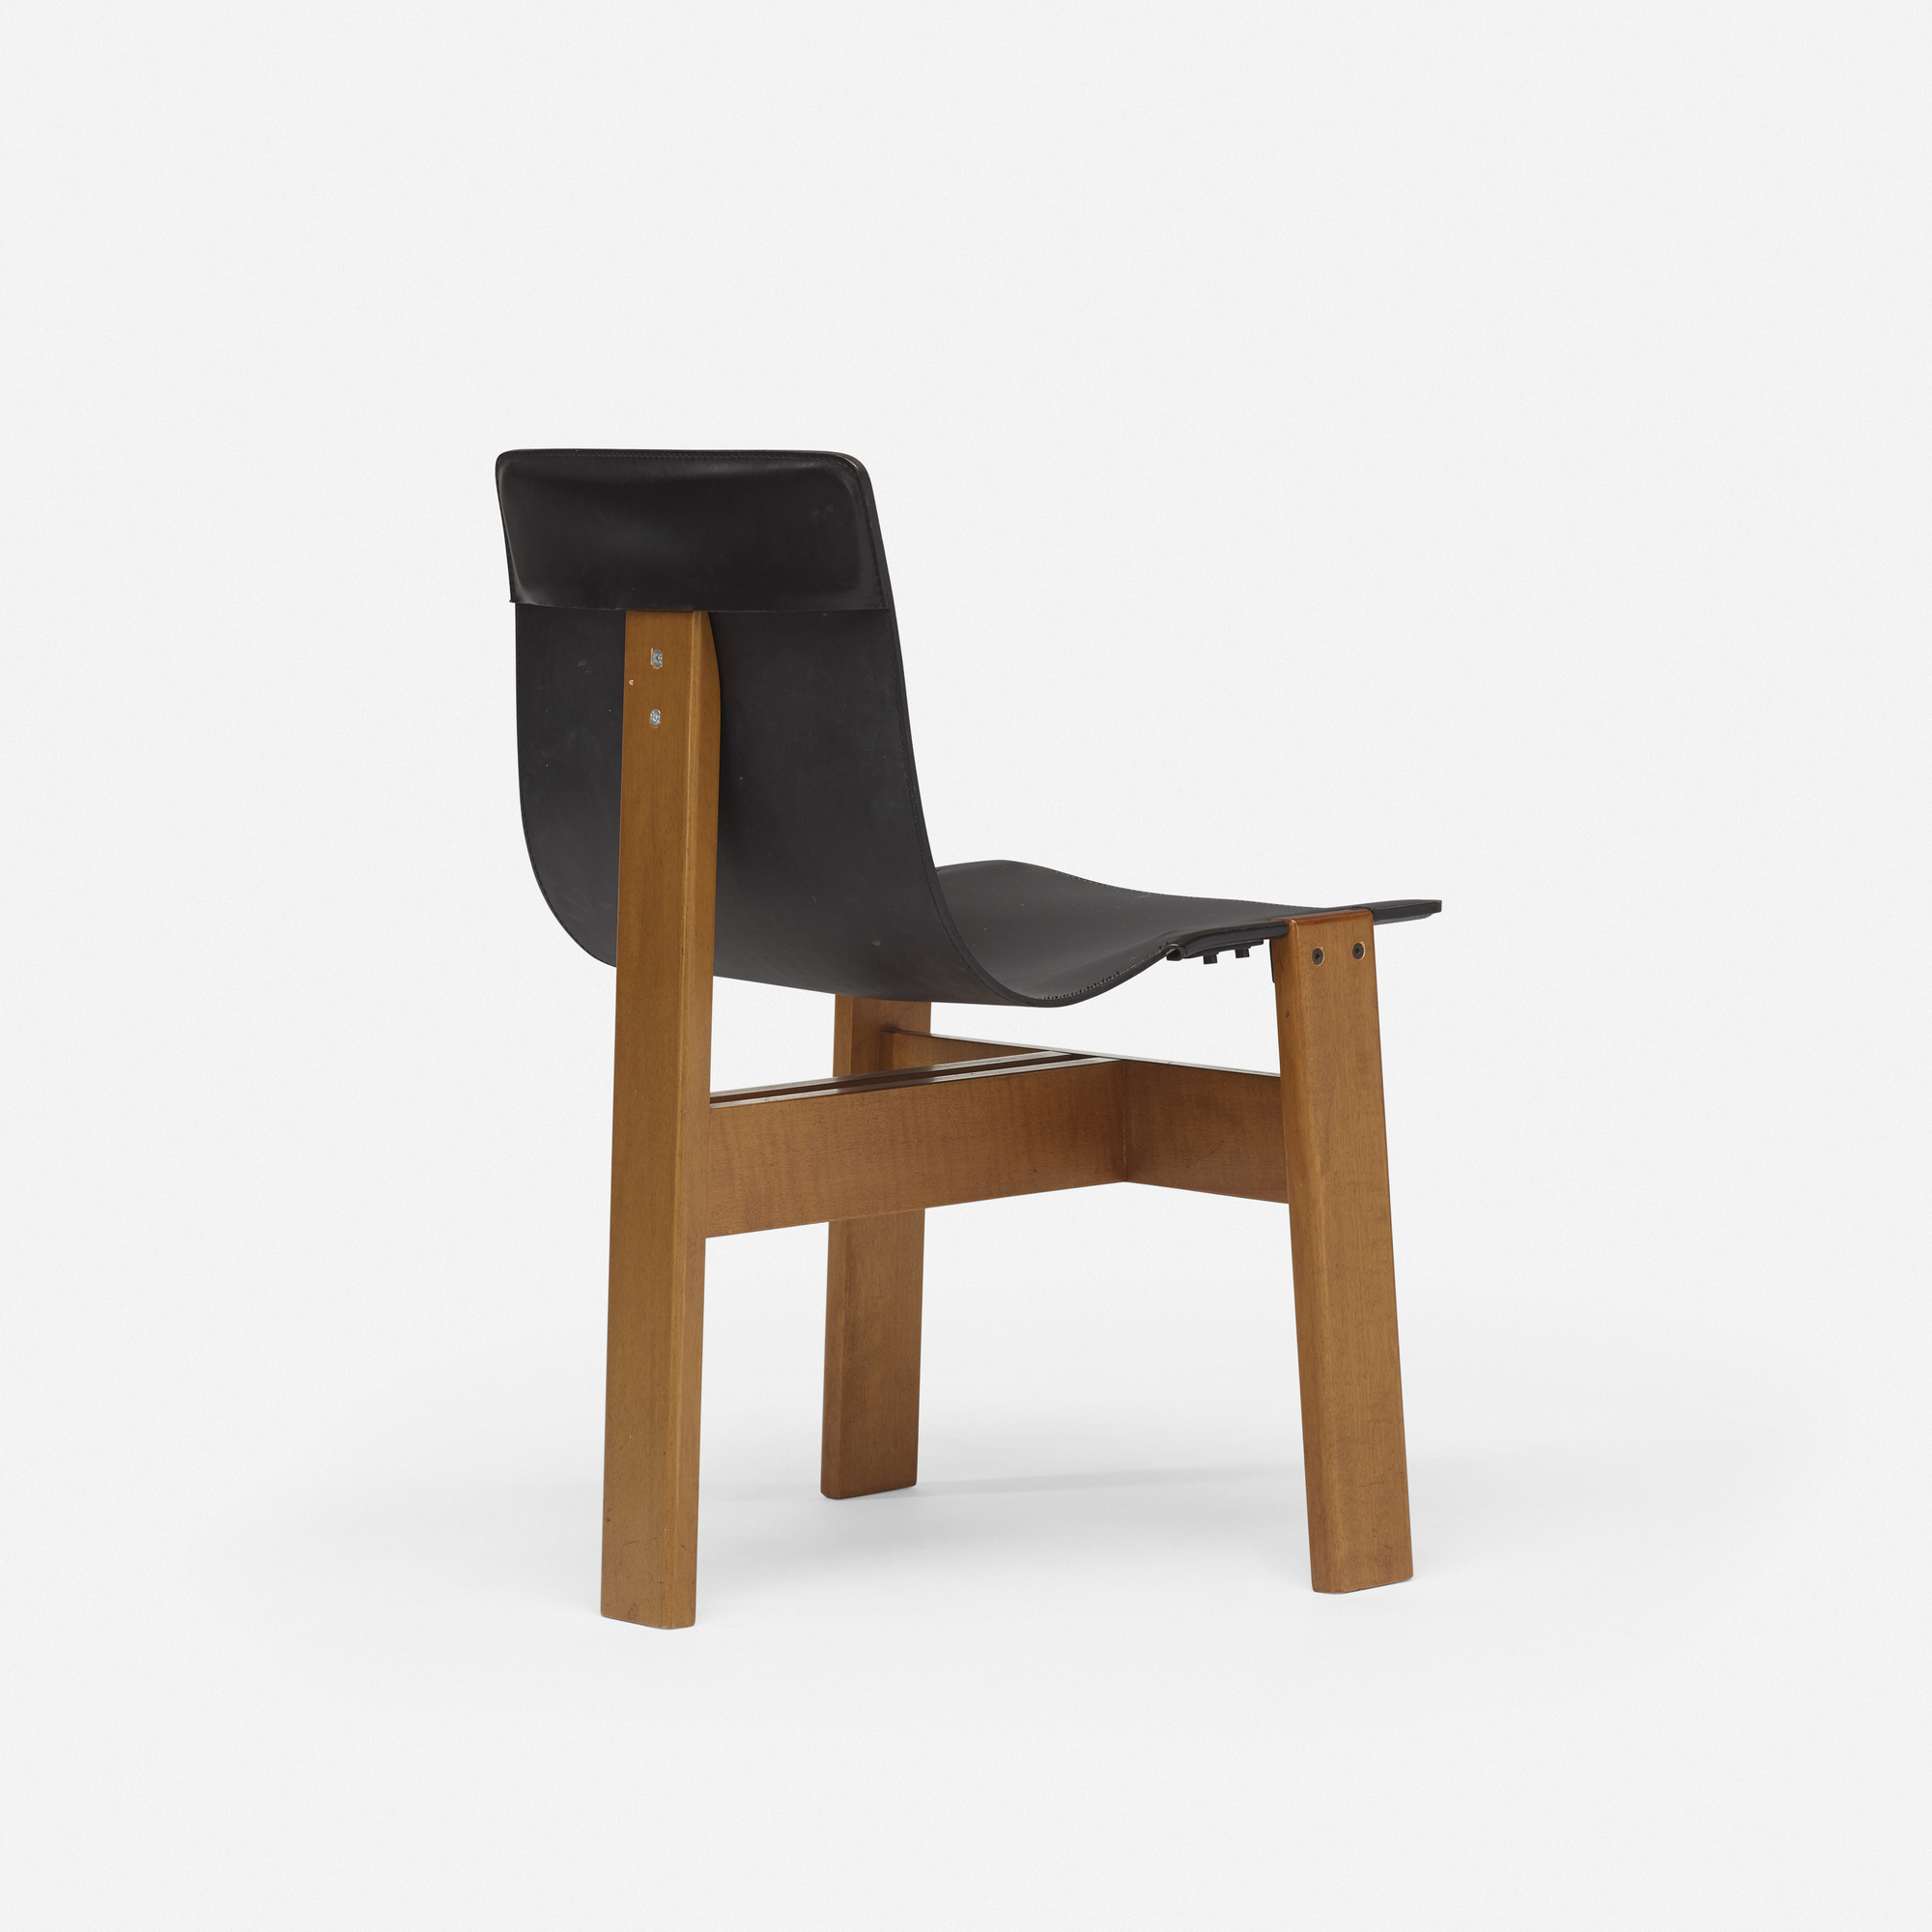 527: Angelo Mangiarotti / Tre 3 dining chair (2 of 3)